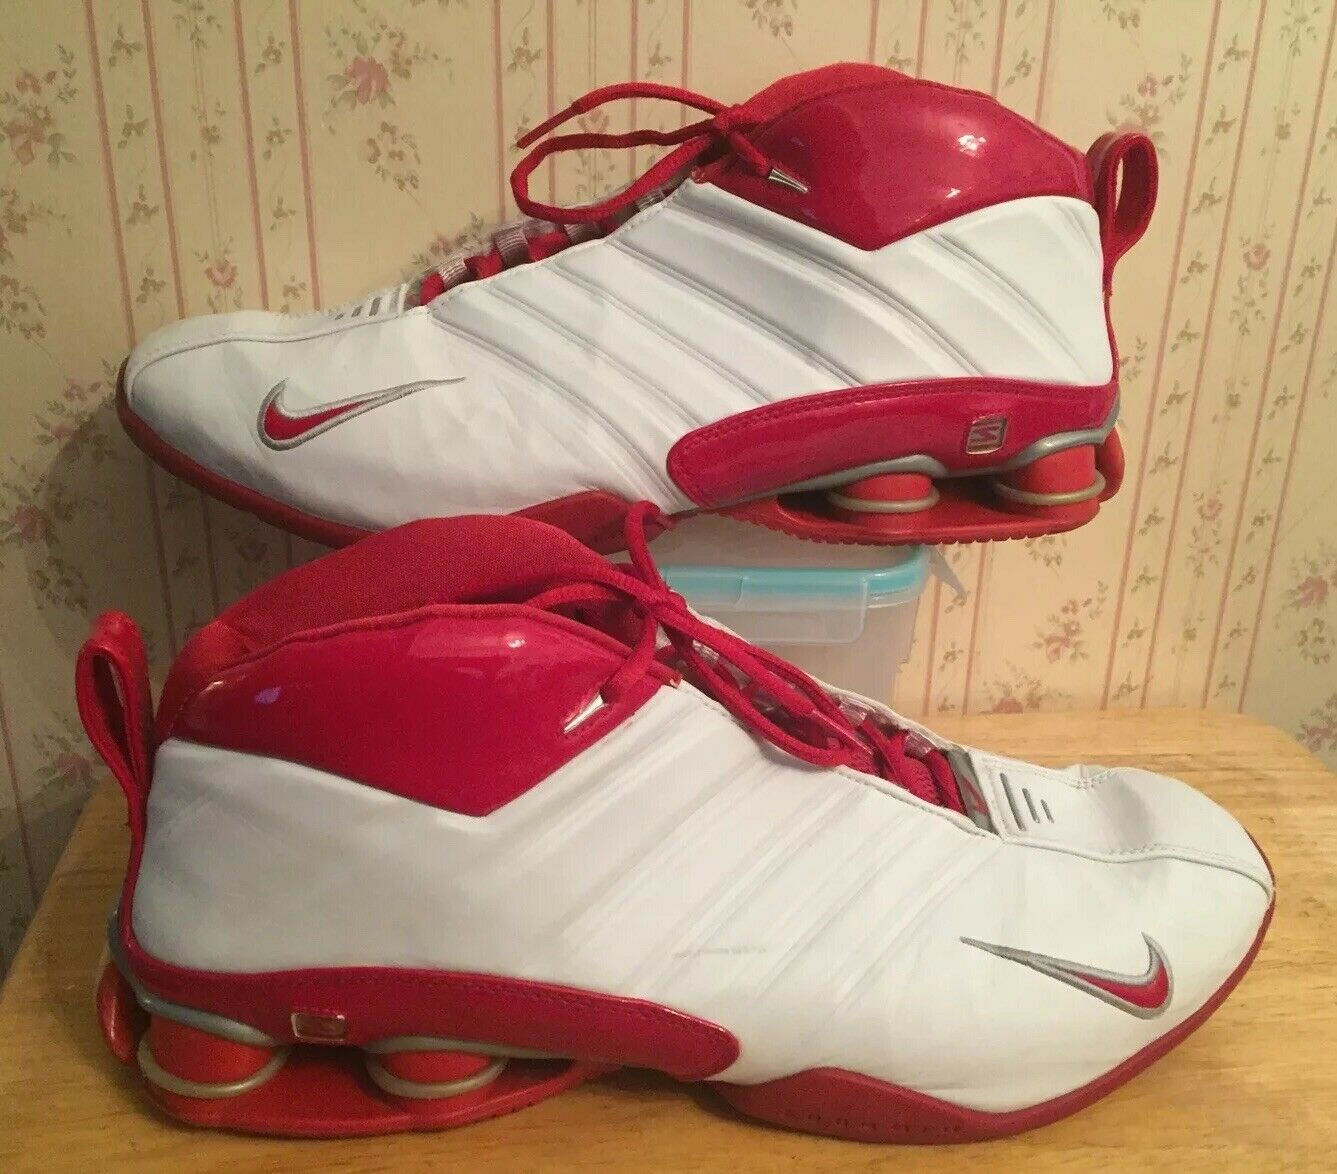 Nike Shox Supremacy PR 2003 shoes Vince White Varsity Red SZ 14